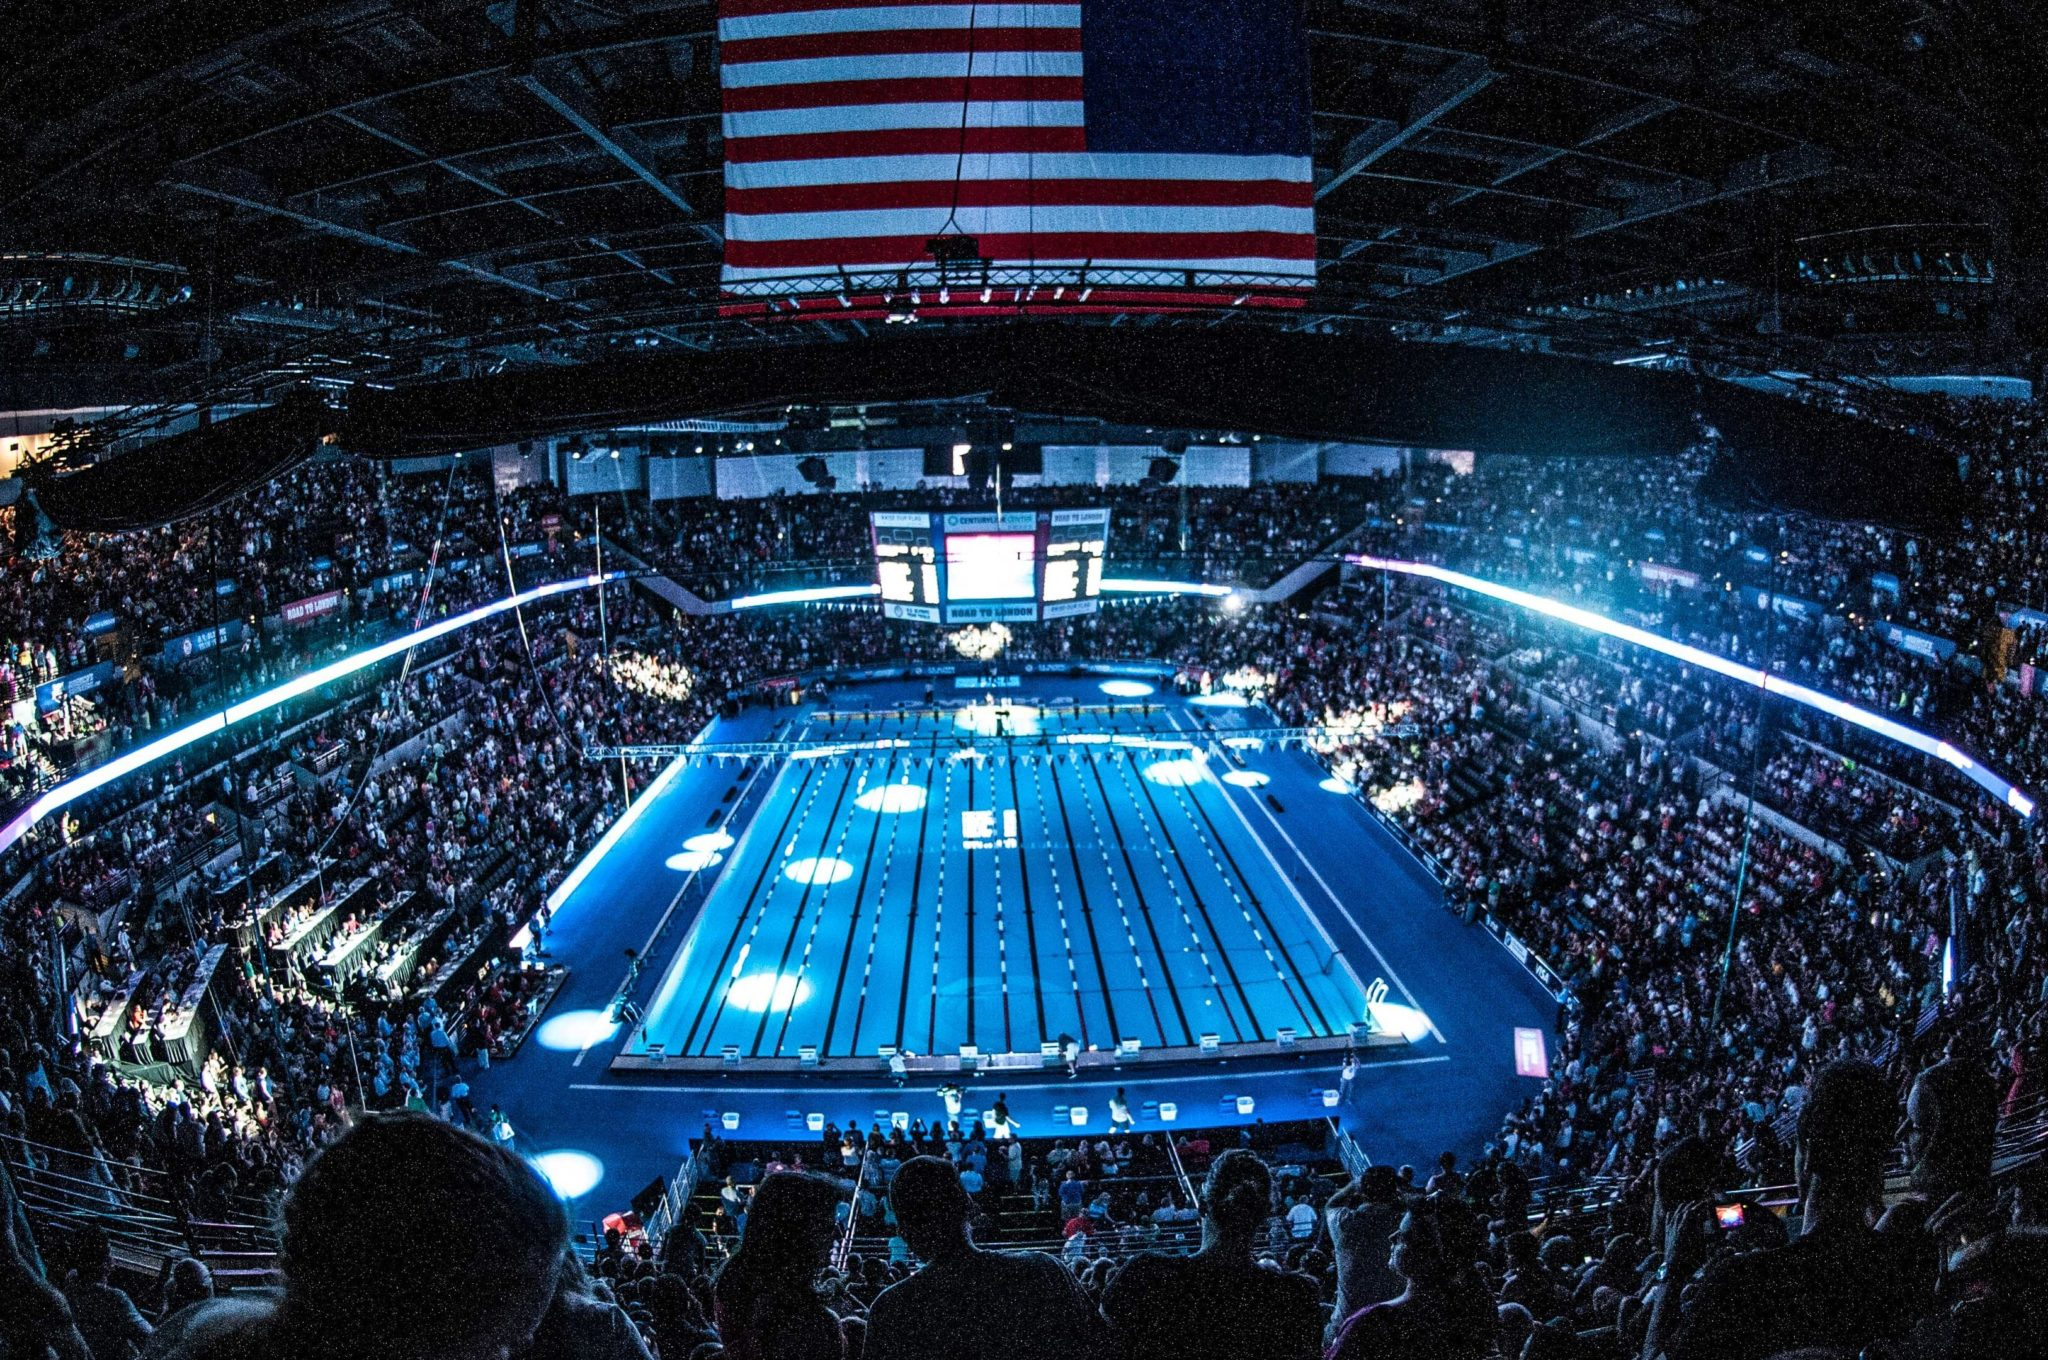 Olympic Swimming Pool 2016 watch: olympic trials pool begins filling with a fire truck